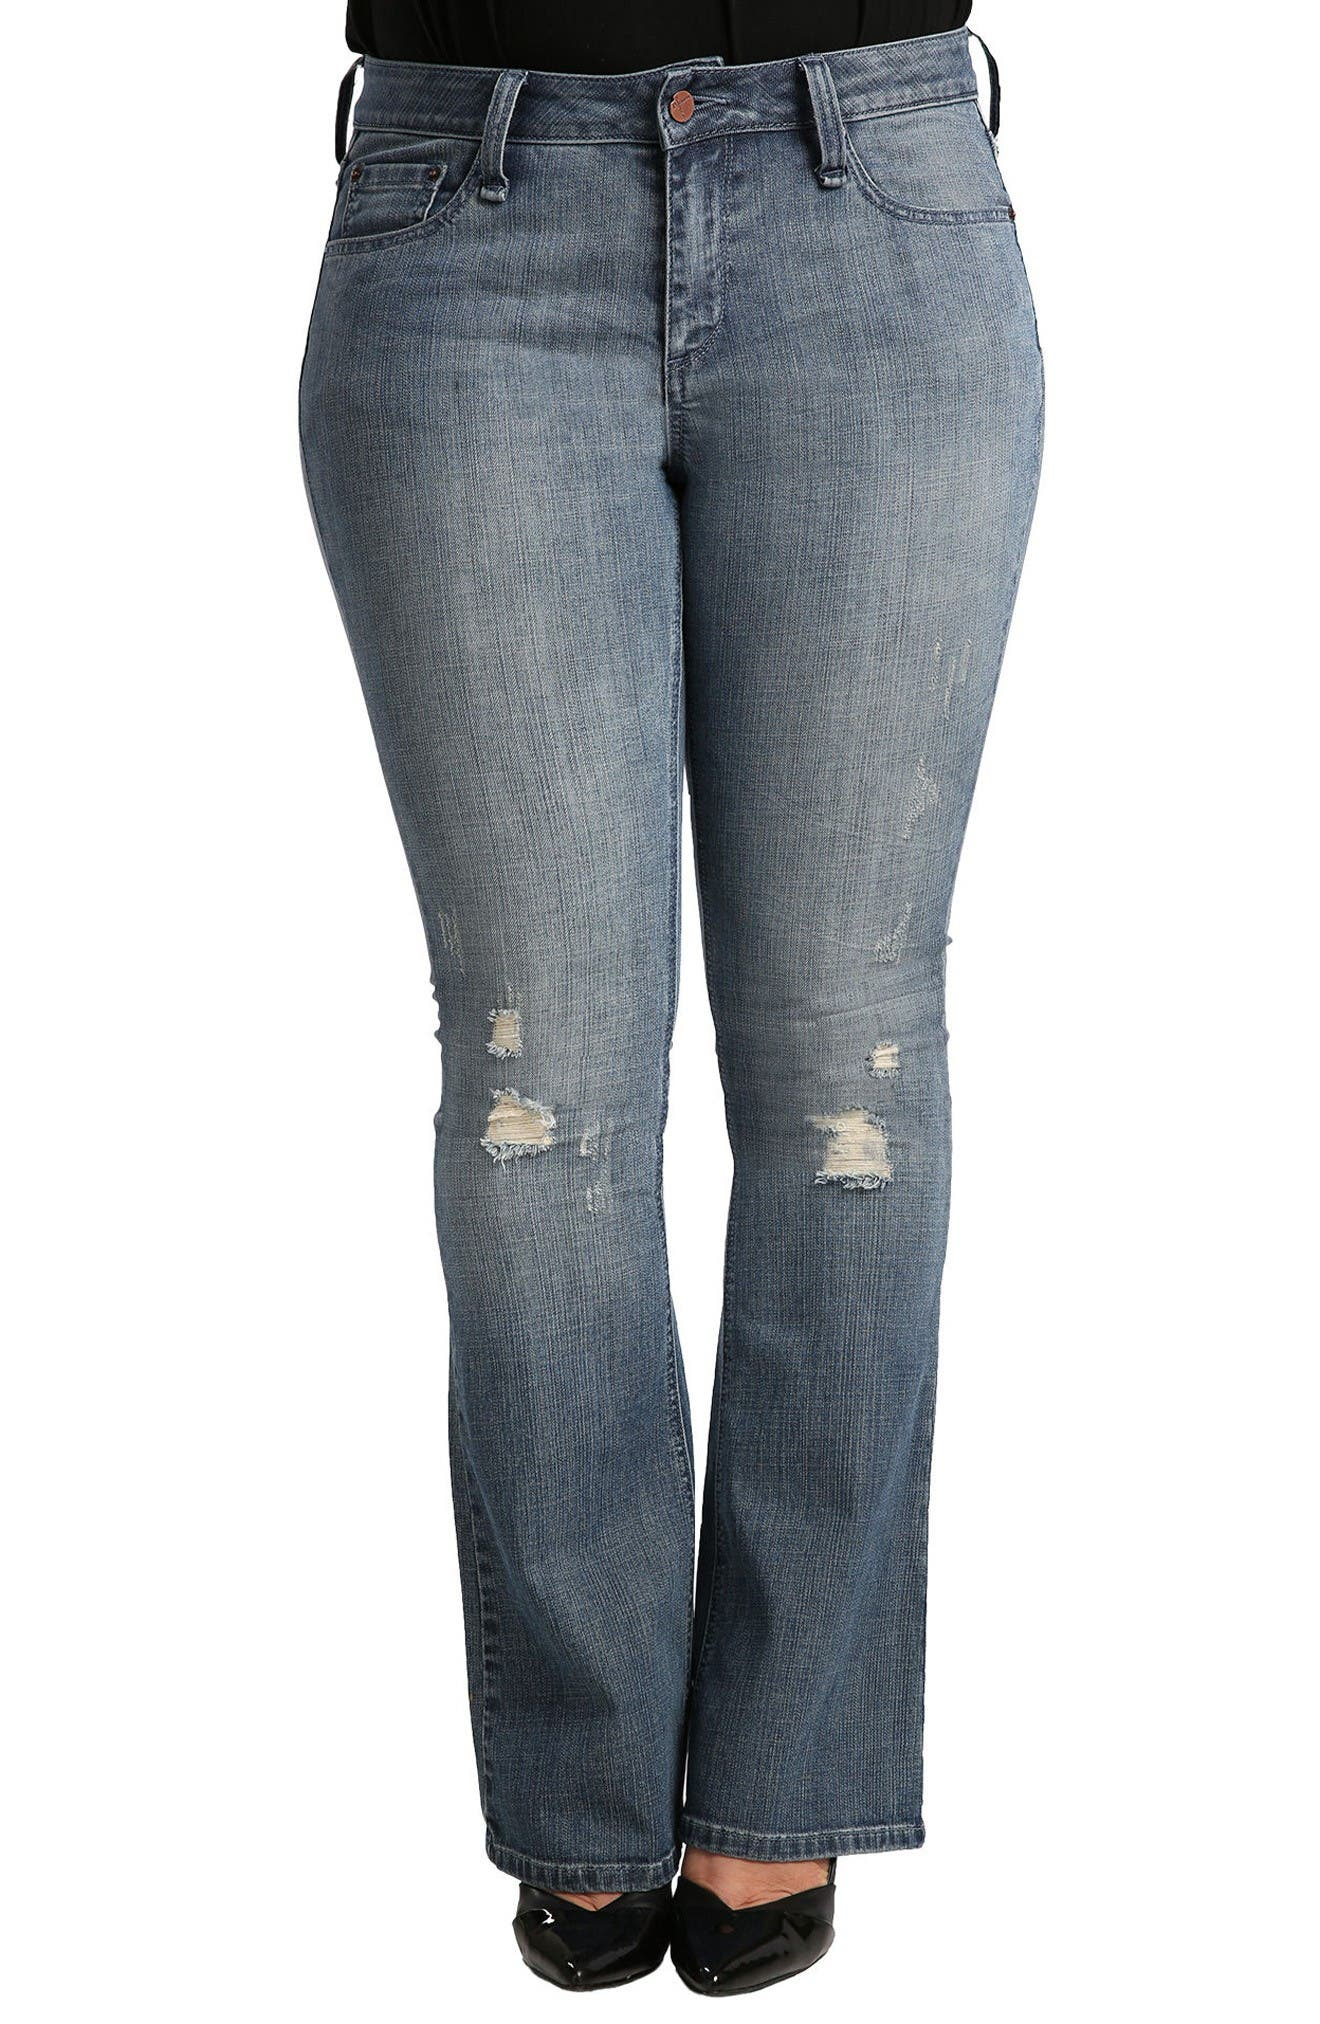 Main Image - Standards & Practices Clarice Uptown Mid Rise Bootcut Jeans (Plus Size)